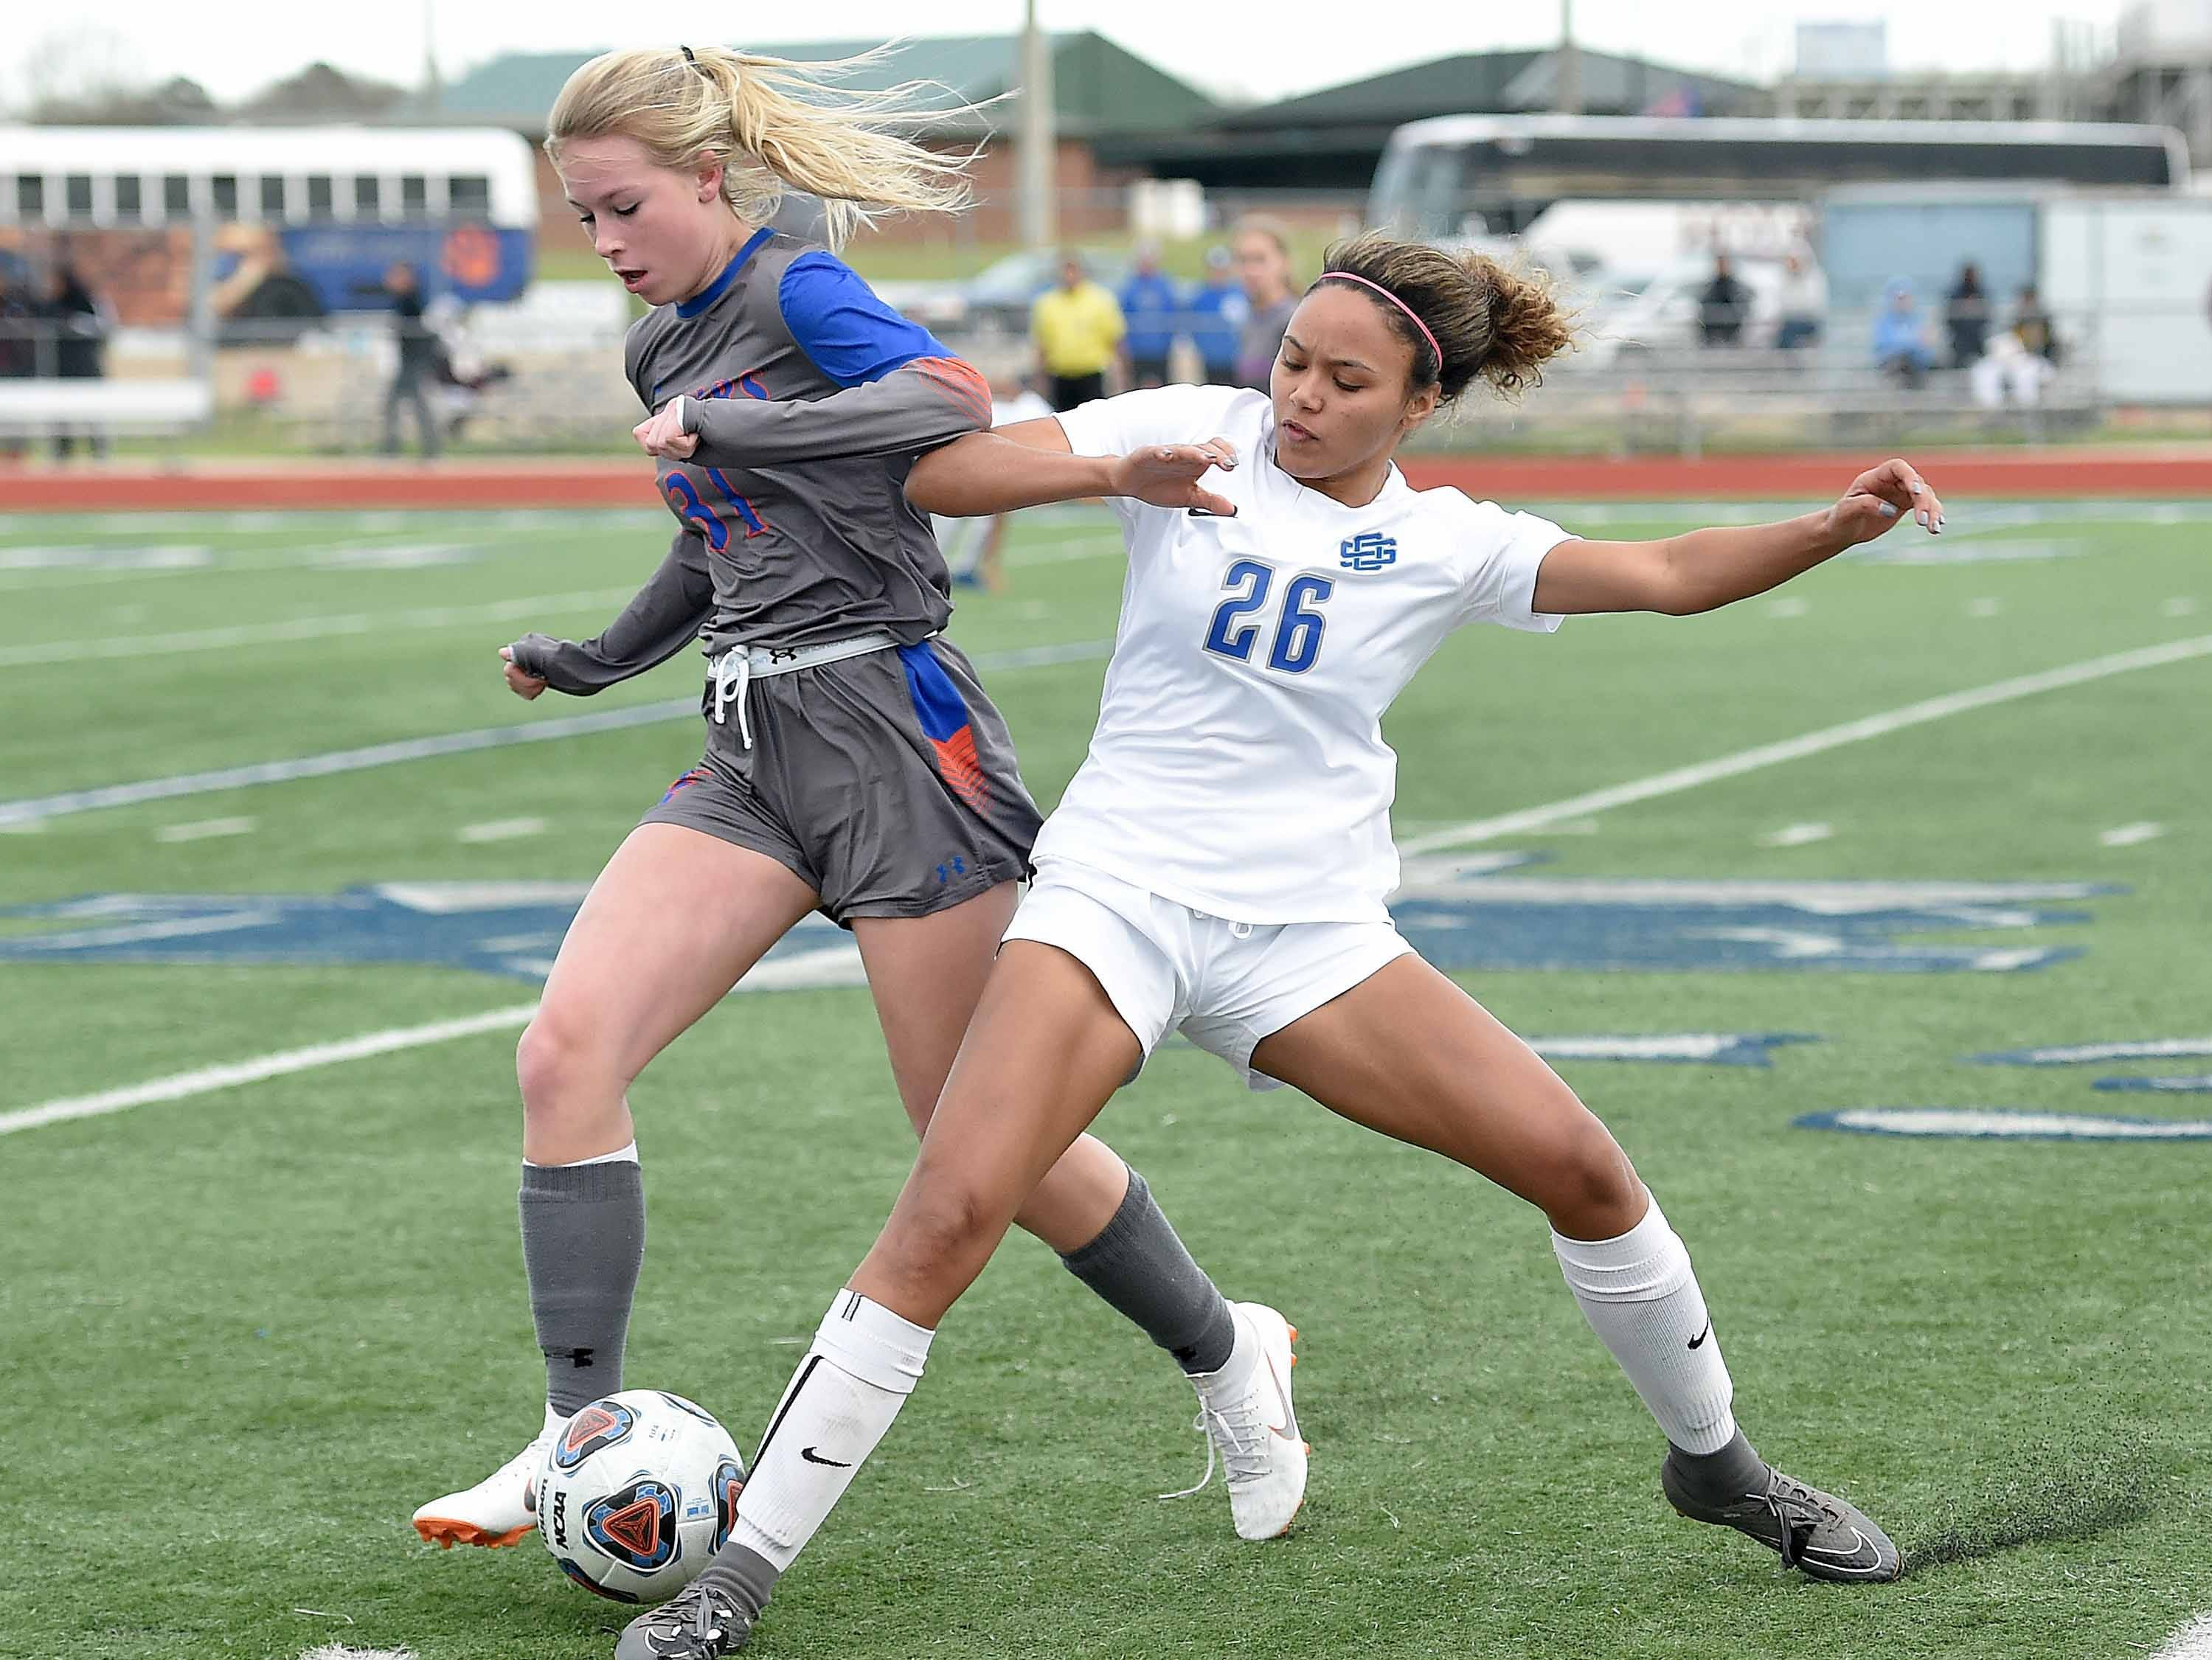 Madison Central's Anna Christia Farmer (31) and Ocean Springs' Ameris Taylor (26) compete for a ball near the sidelines in the Class 6A state championship in the MHSAA BlueCross Blue Shield of Mississippi Soccer Classic on Saturday, February 9, 2019, at Ridgeland High School in Ridgeland, Miss.